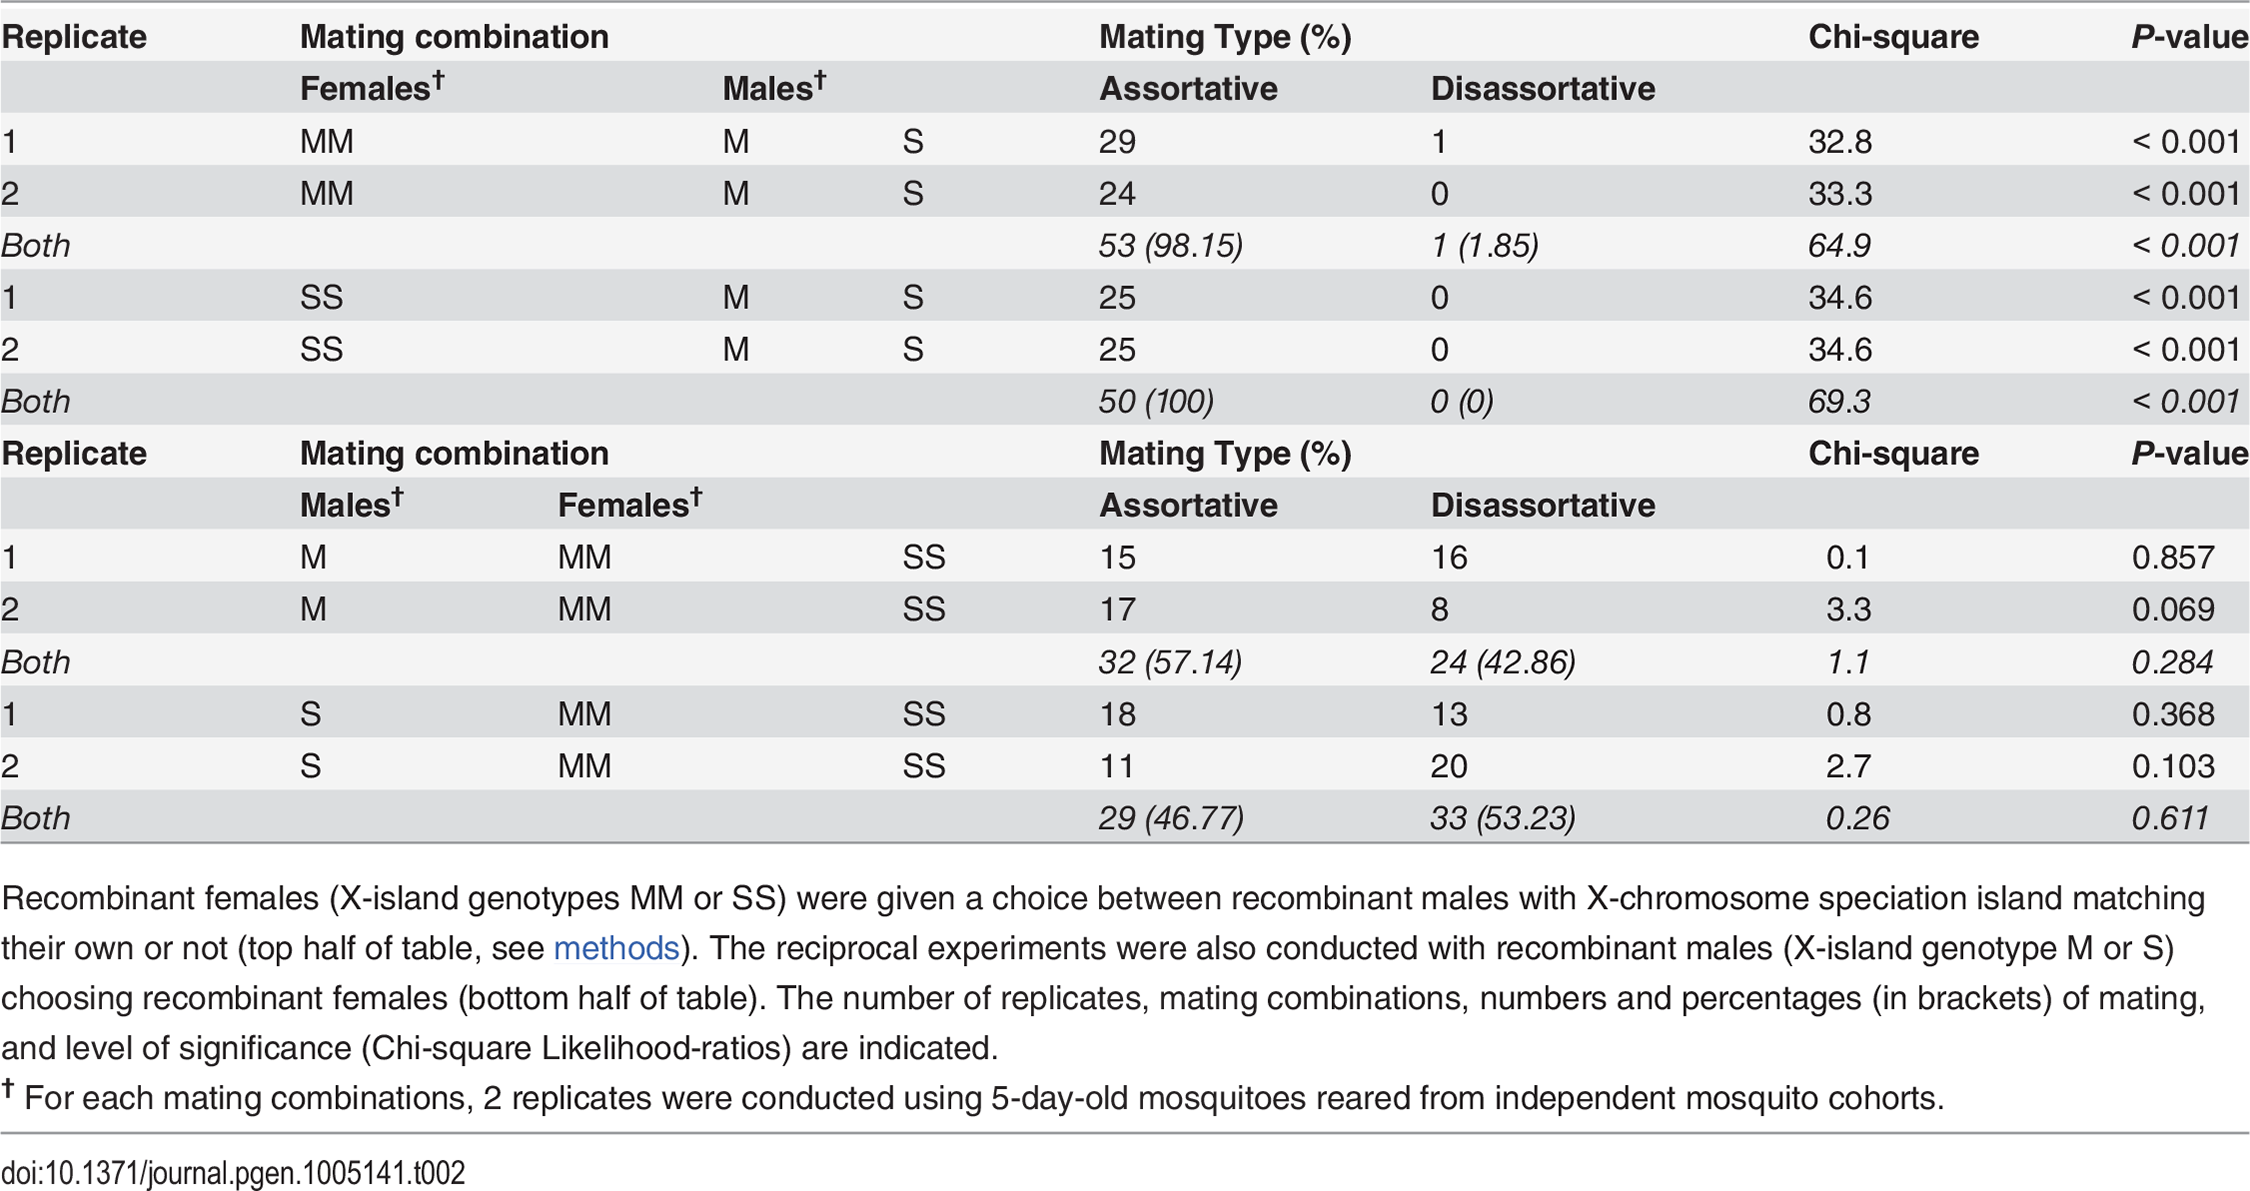 Number of females and males mating assortatively in reciprocal behavioural assays among the RbMM and RbSS recombinants strains.